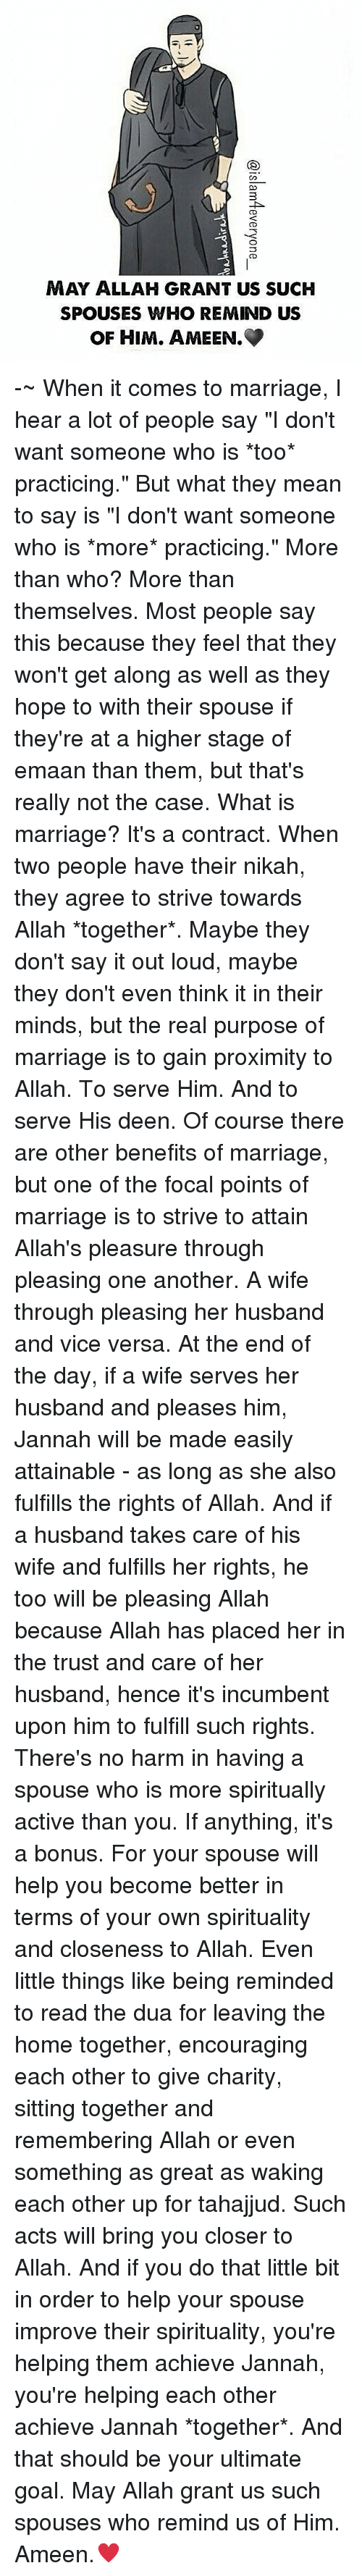 """Pleasured: MAY ALLAH GRANT US SUCH  SPOUSES WHO REMIND US  OF HIM. AMEEN. -~ When it comes to marriage, I hear a lot of people say """"I don't want someone who is *too* practicing."""" But what they mean to say is """"I don't want someone who is *more* practicing."""" More than who? More than themselves. Most people say this because they feel that they won't get along as well as they hope to with their spouse if they're at a higher stage of emaan than them, but that's really not the case. What is marriage? It's a contract. When two people have their nikah, they agree to strive towards Allah *together*. Maybe they don't say it out loud, maybe they don't even think it in their minds, but the real purpose of marriage is to gain proximity to Allah. To serve Him. And to serve His deen. Of course there are other benefits of marriage, but one of the focal points of marriage is to strive to attain Allah's pleasure through pleasing one another. A wife through pleasing her husband and vice versa. At the end of the day, if a wife serves her husband and pleases him, Jannah will be made easily attainable - as long as she also fulfills the rights of Allah. And if a husband takes care of his wife and fulfills her rights, he too will be pleasing Allah because Allah has placed her in the trust and care of her husband, hence it's incumbent upon him to fulfill such rights. There's no harm in having a spouse who is more spiritually active than you. If anything, it's a bonus. For your spouse will help you become better in terms of your own spirituality and closeness to Allah. Even little things like being reminded to read the dua for leaving the home together, encouraging each other to give charity, sitting together and remembering Allah or even something as great as waking each other up for tahajjud. Such acts will bring you closer to Allah. And if you do that little bit in order to help your spouse improve their spirituality, you're helping them achieve Jannah, you're helping each other achieve J"""